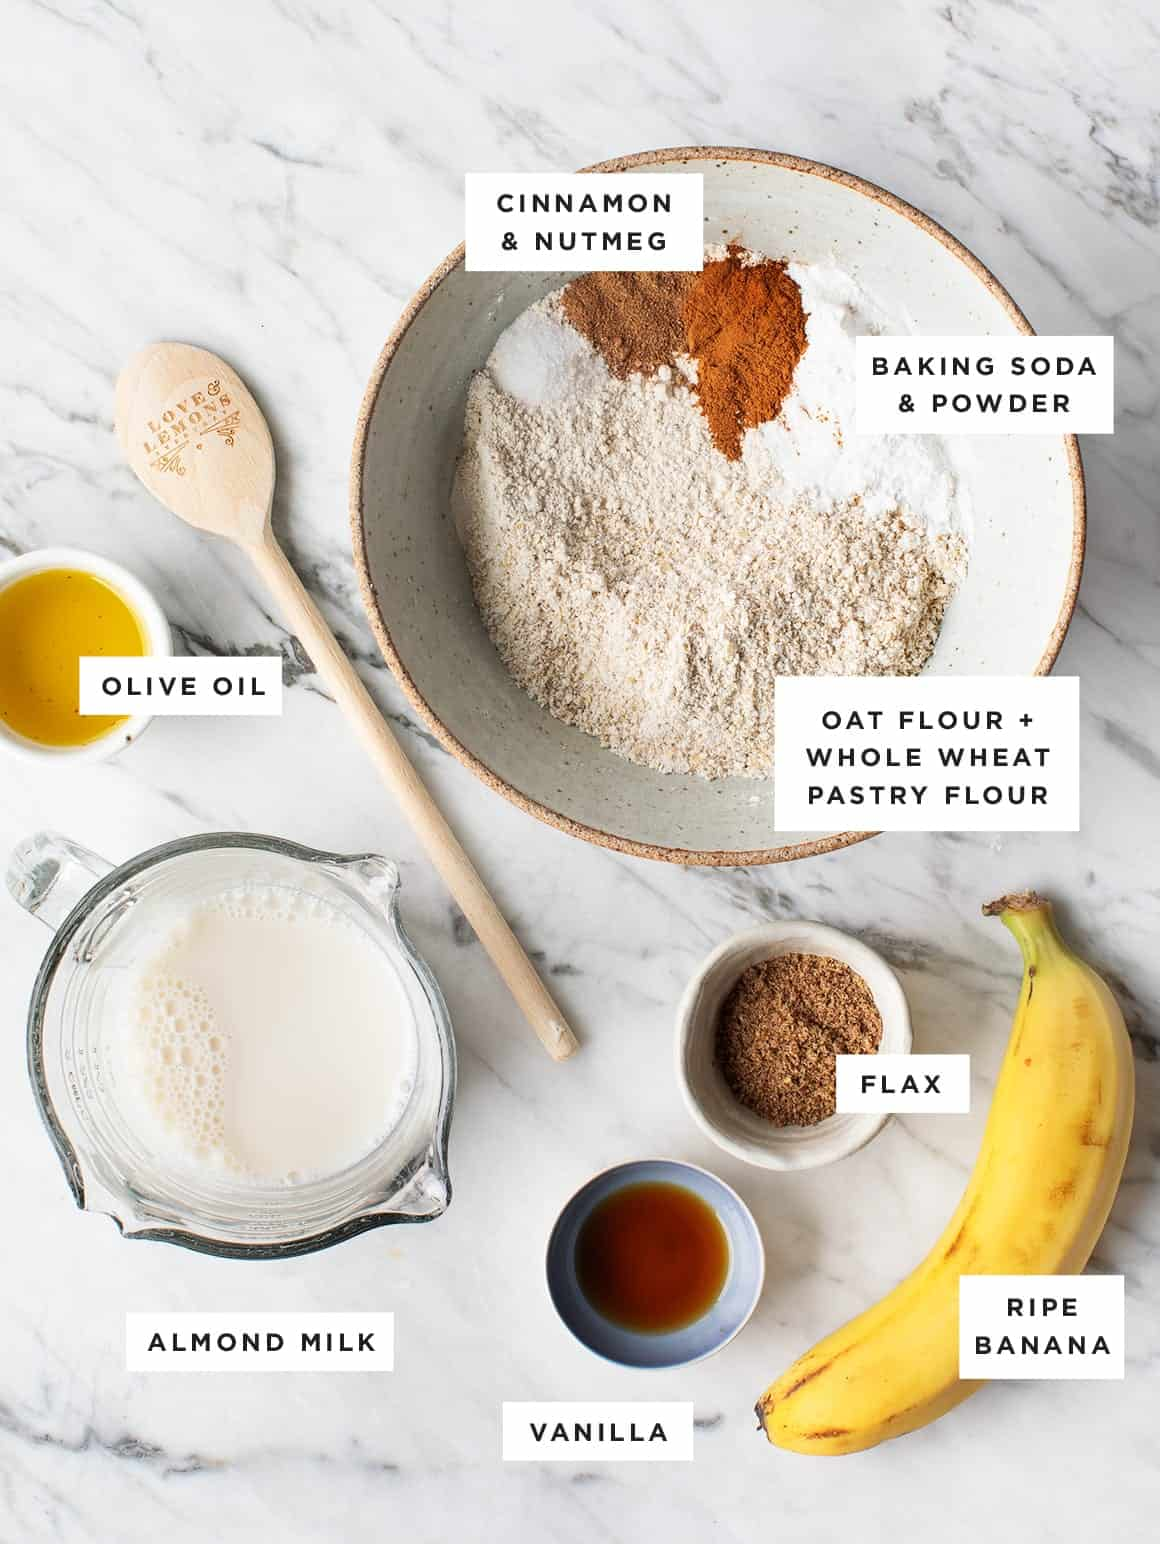 Banana Pancakes recipe ingredients